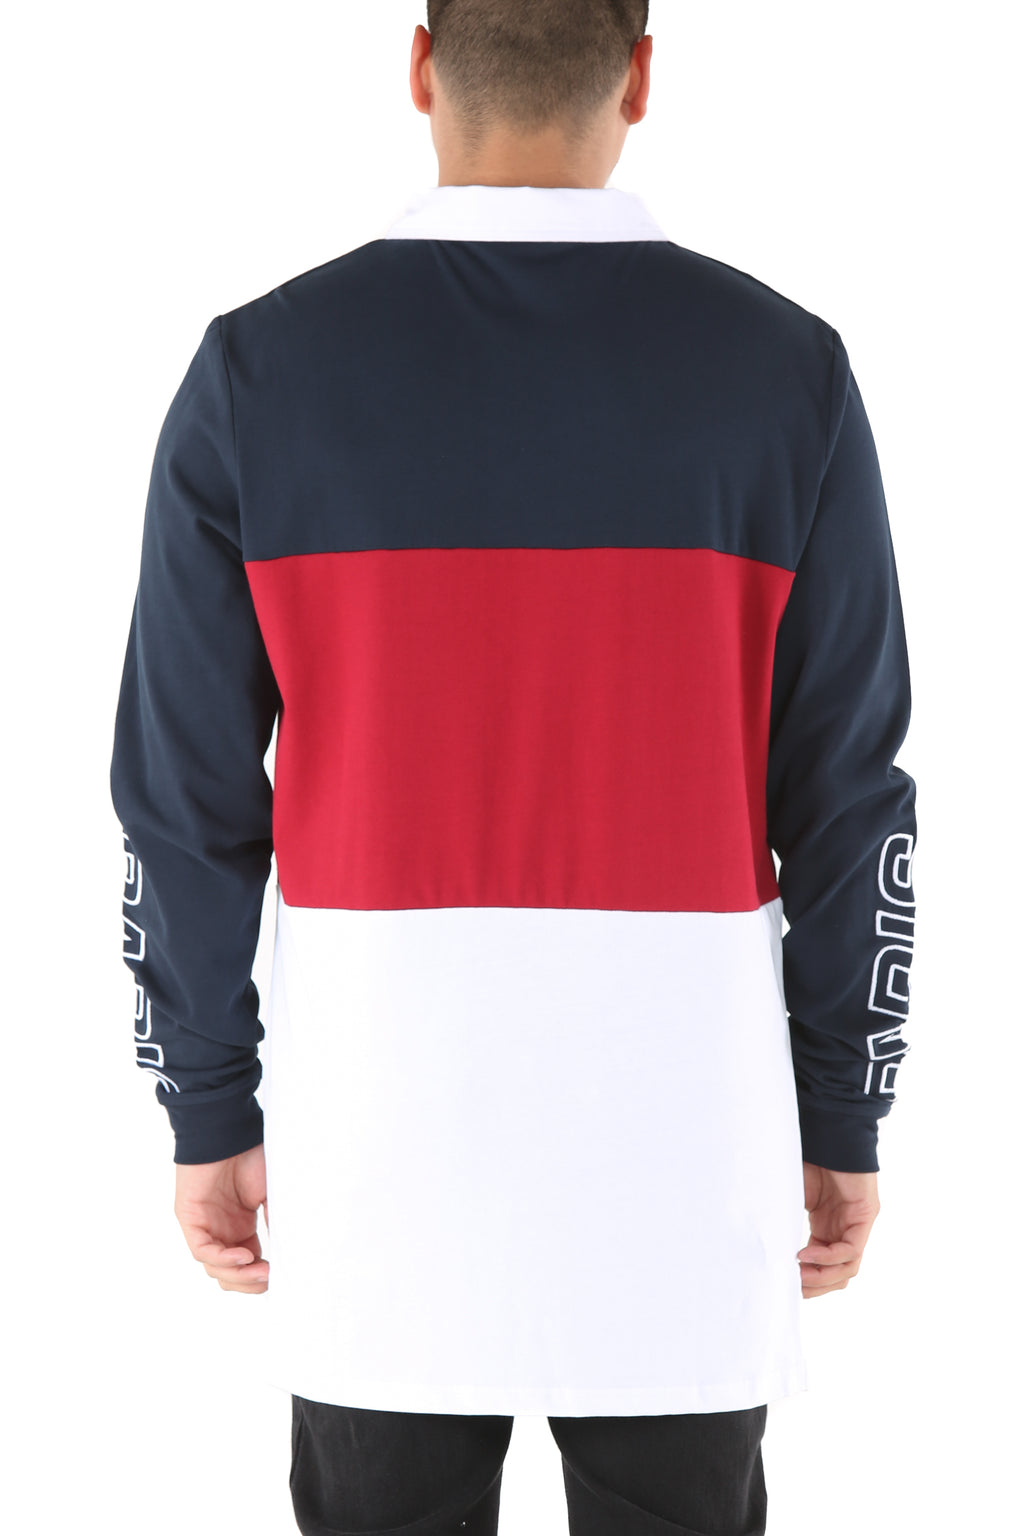 Carré Conducteur Long Sleeve Polo Navy/Red/White